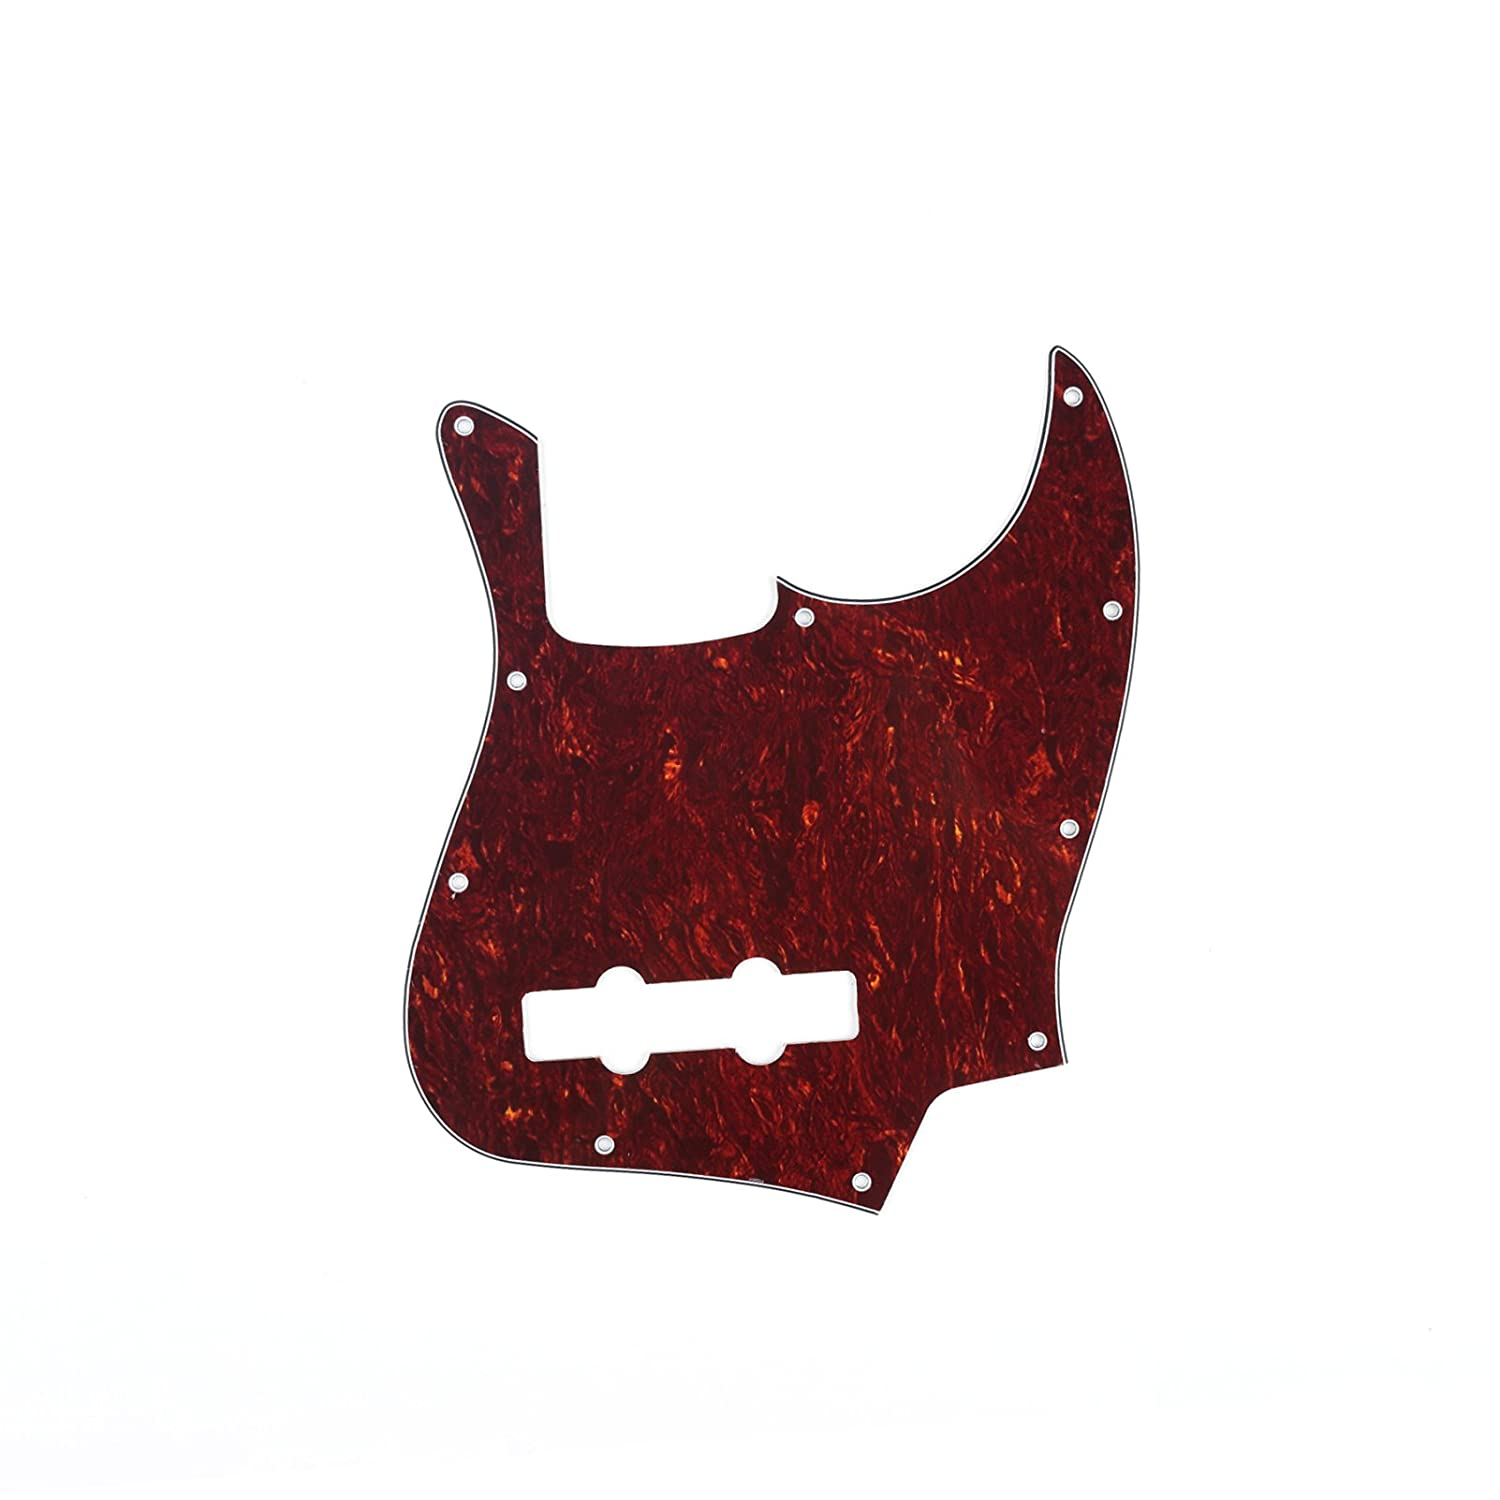 Musiclily 10 Hole J Bass Pickguard for Fender American//Mexican Made Standard Jazz Bass 1Ply White